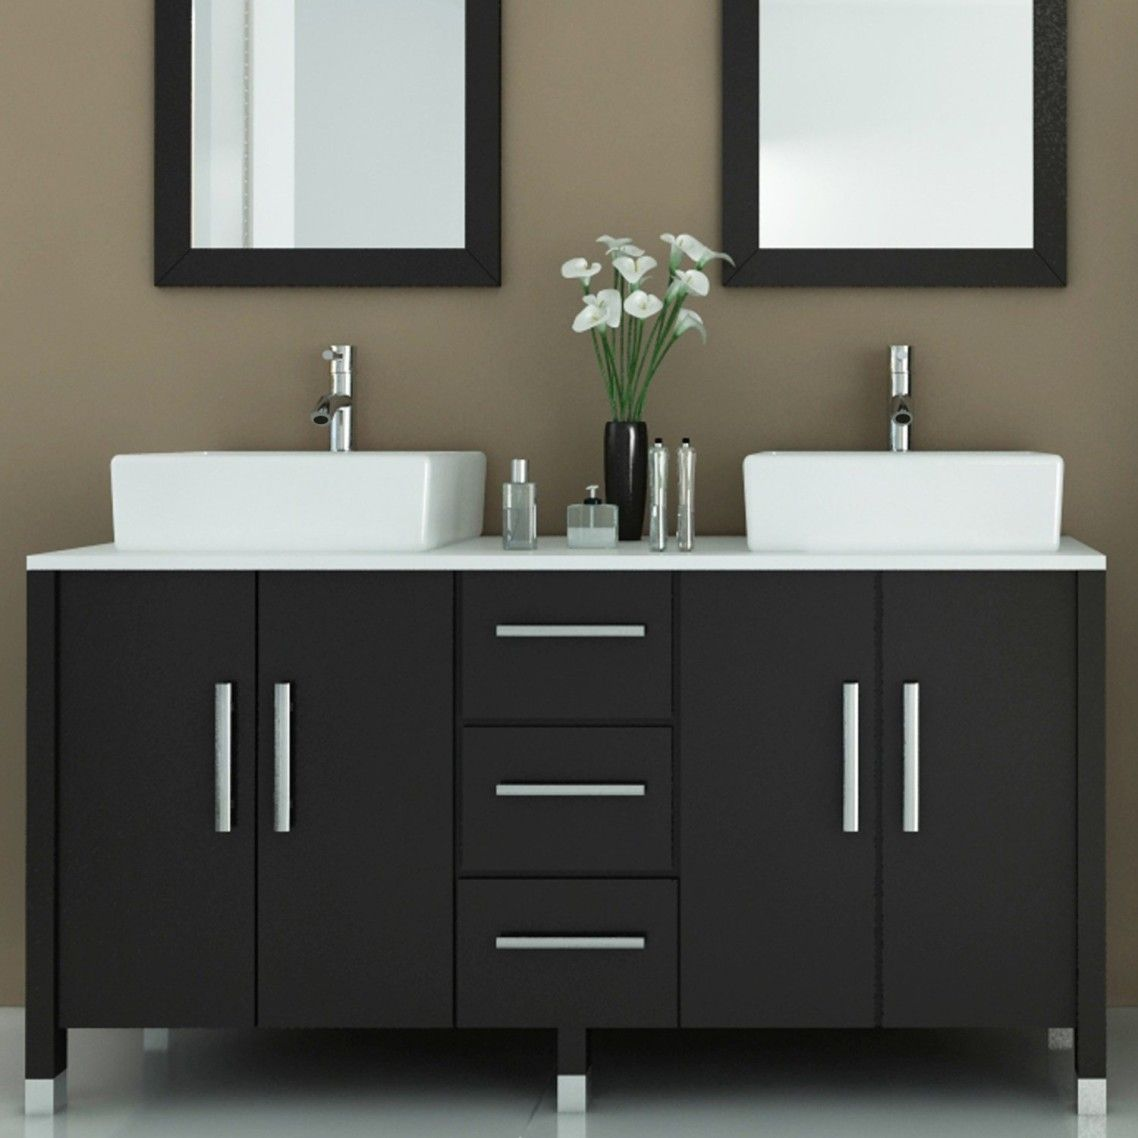 Black Painted Wooden Double Vanity Mixed White Porcelain Vessel Sink And Twin Bathroom Furniture Modern Double Vanity Bathroom White Vanity Bathroom